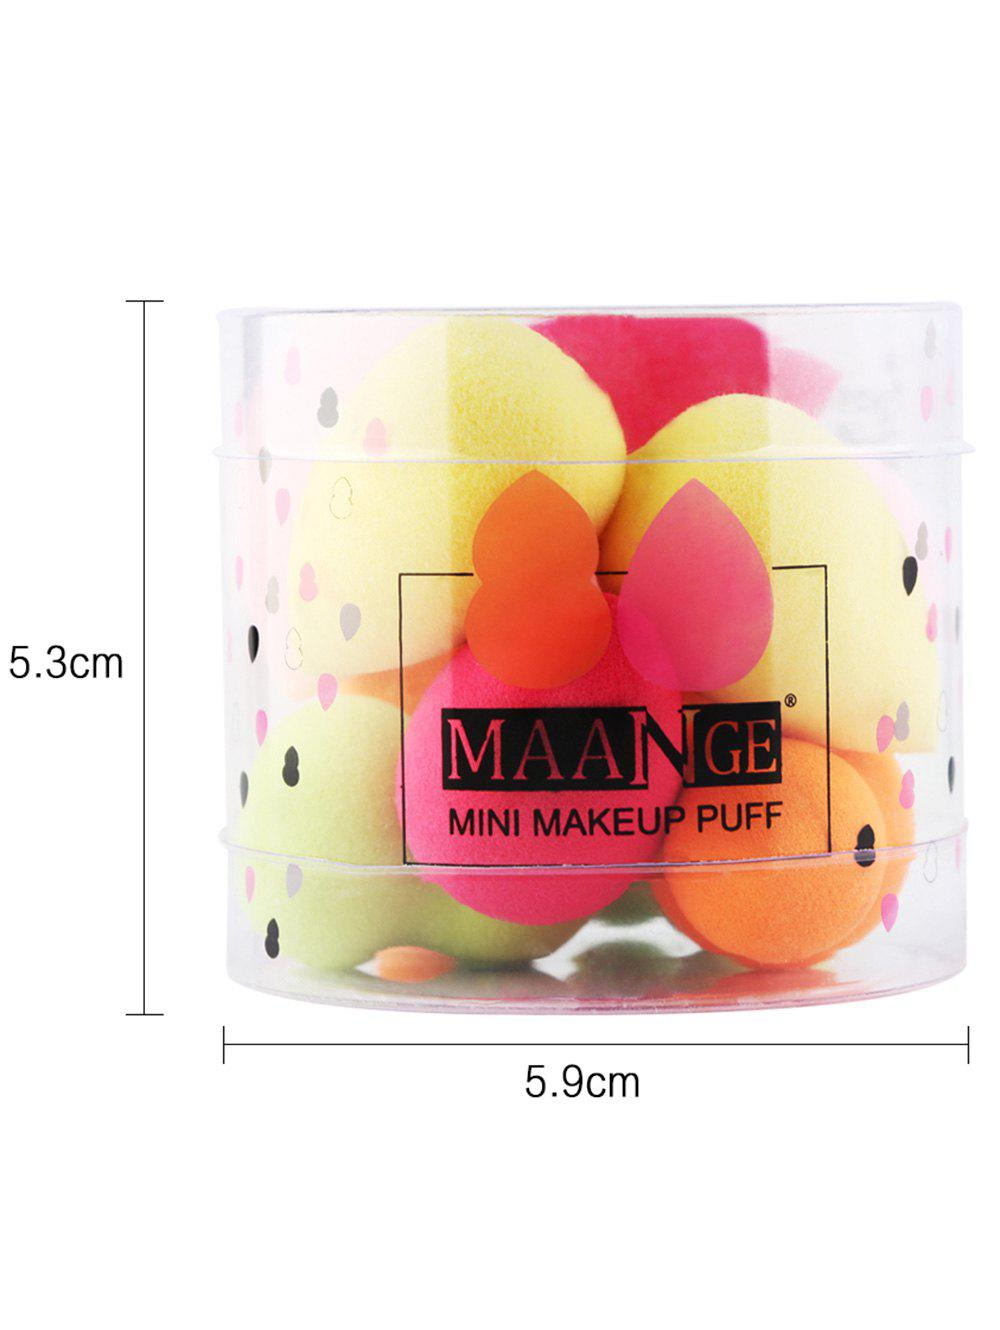 10Pcs Makeup Up Beauty Sponges with Box - COLORFUL